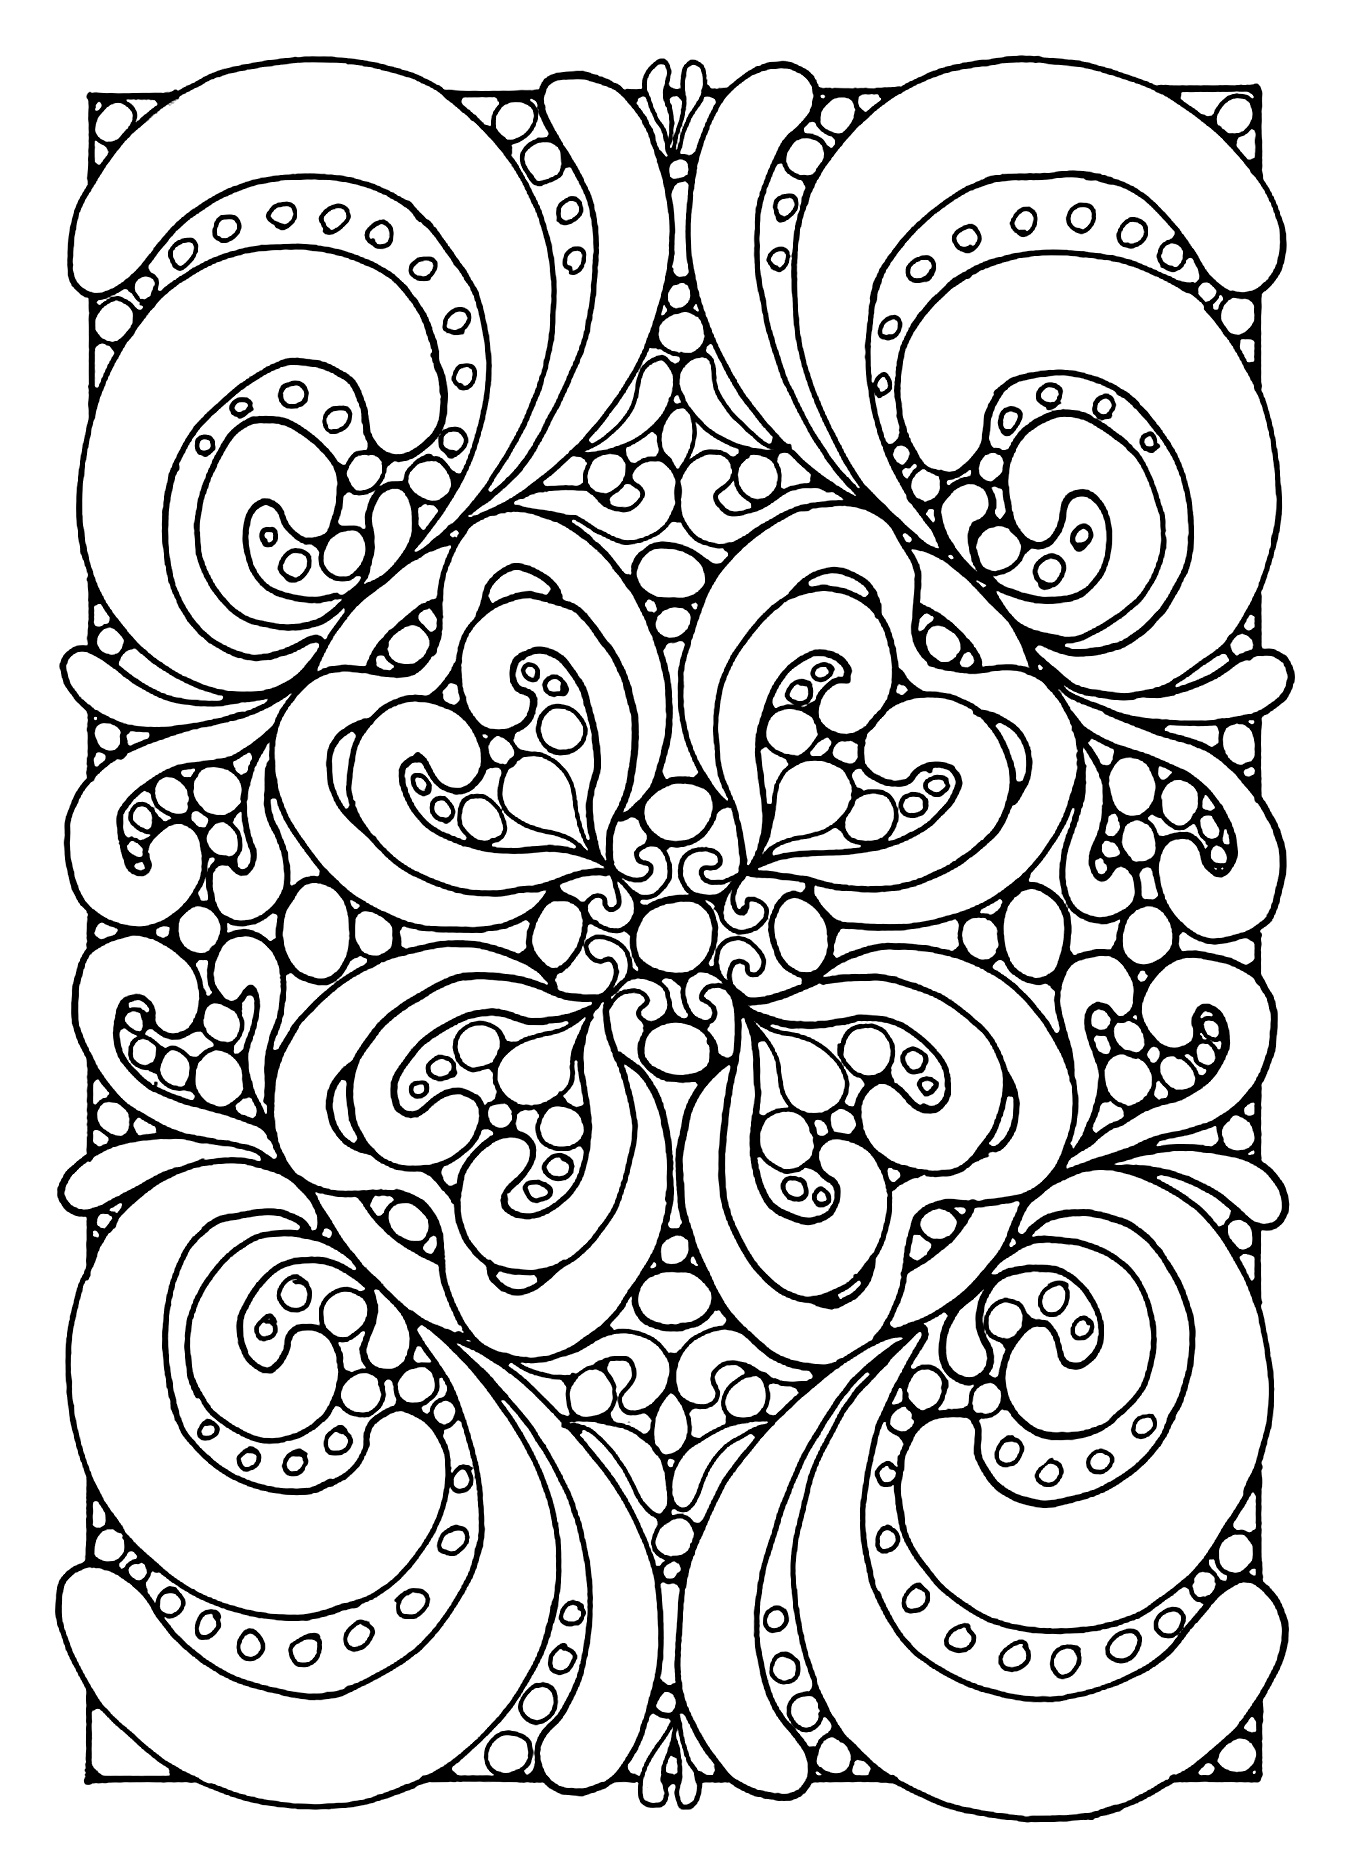 free zen coloring pages zen coloring download zen coloring for free 2019 zen coloring pages free